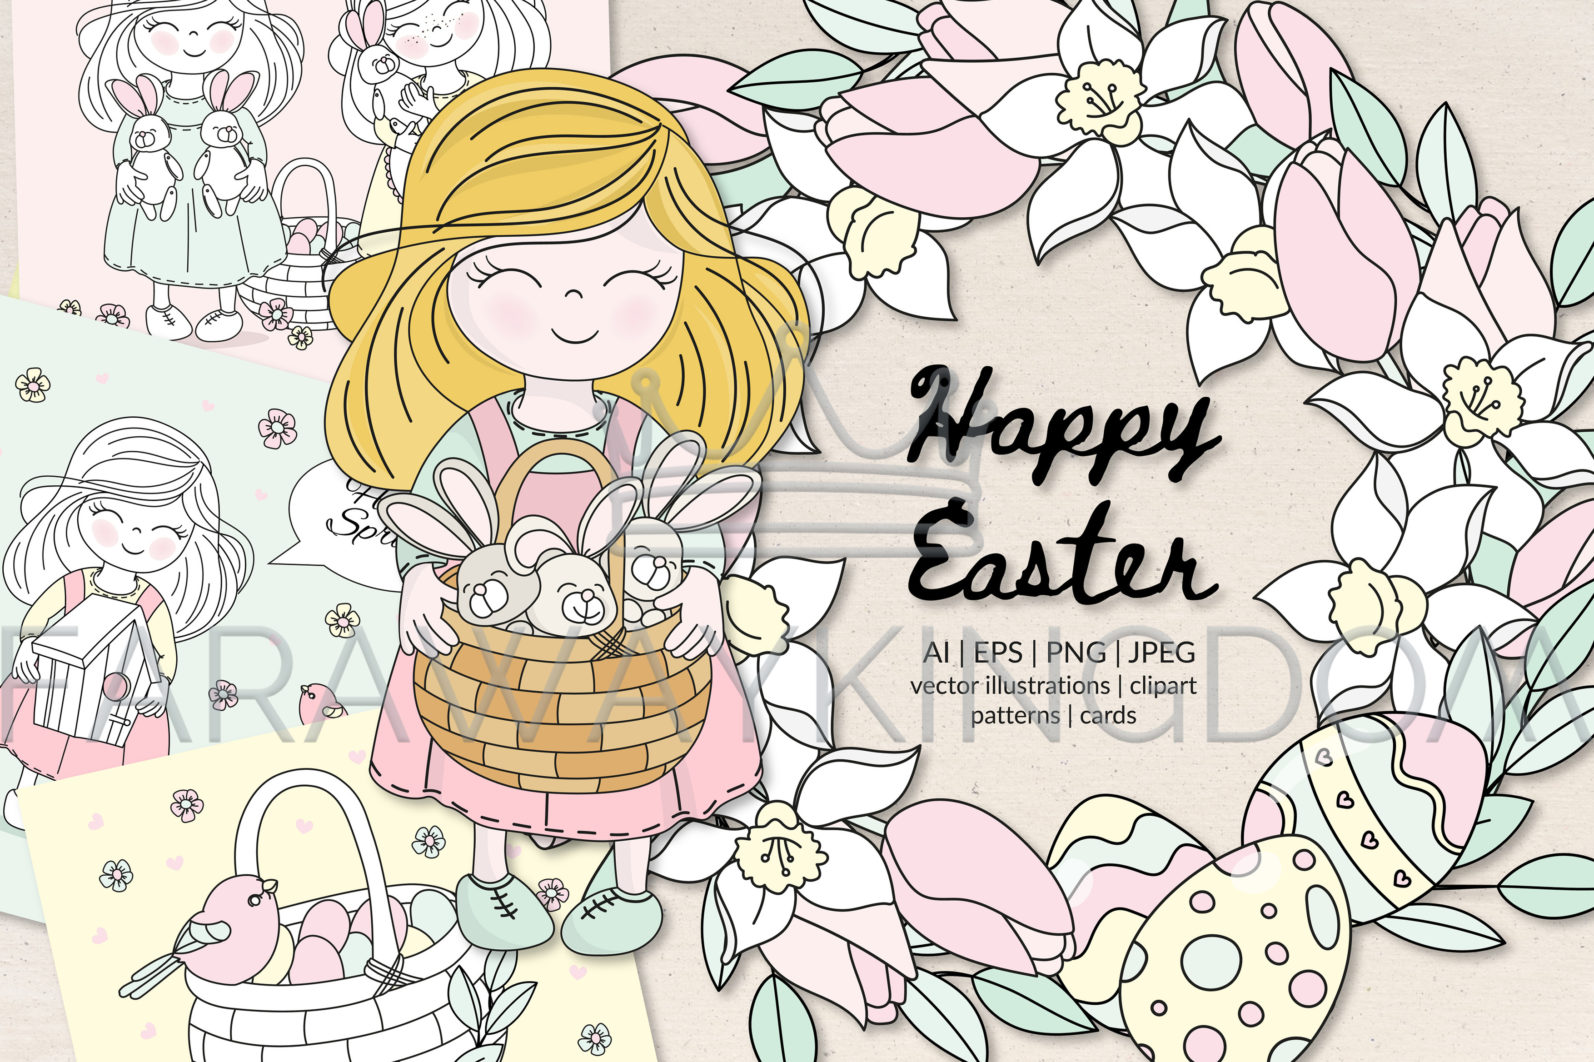 HAPPY EASTER Seamless Pattern Wreath Clip Art Greeting Card Vector Illustration Set - HAPPY EASTER Cover 1 scaled -